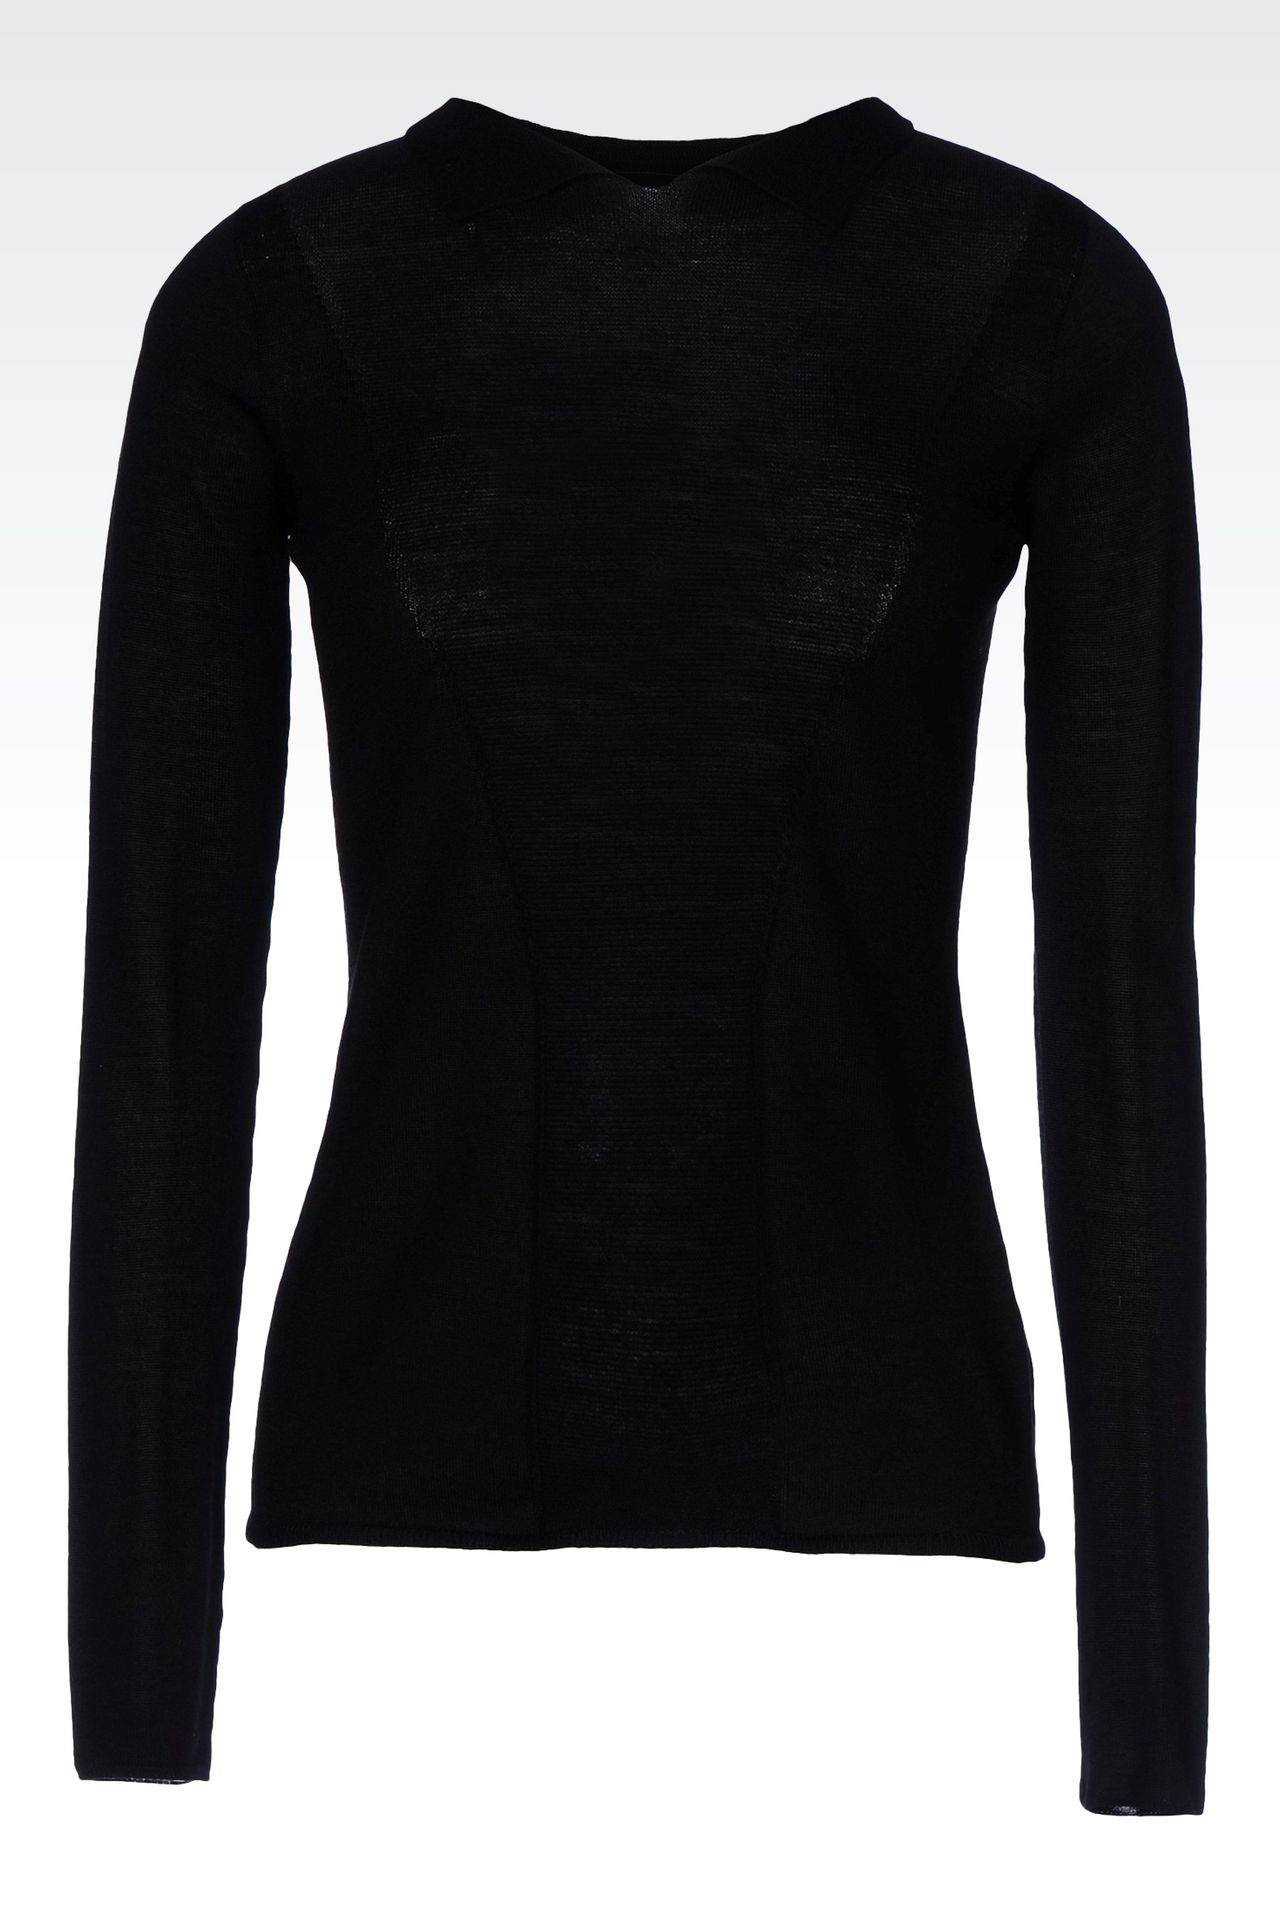 VIRGIN WOOL JUMPER WITH SHIRT COLLAR: Polo sweaters Women by Armani - 0